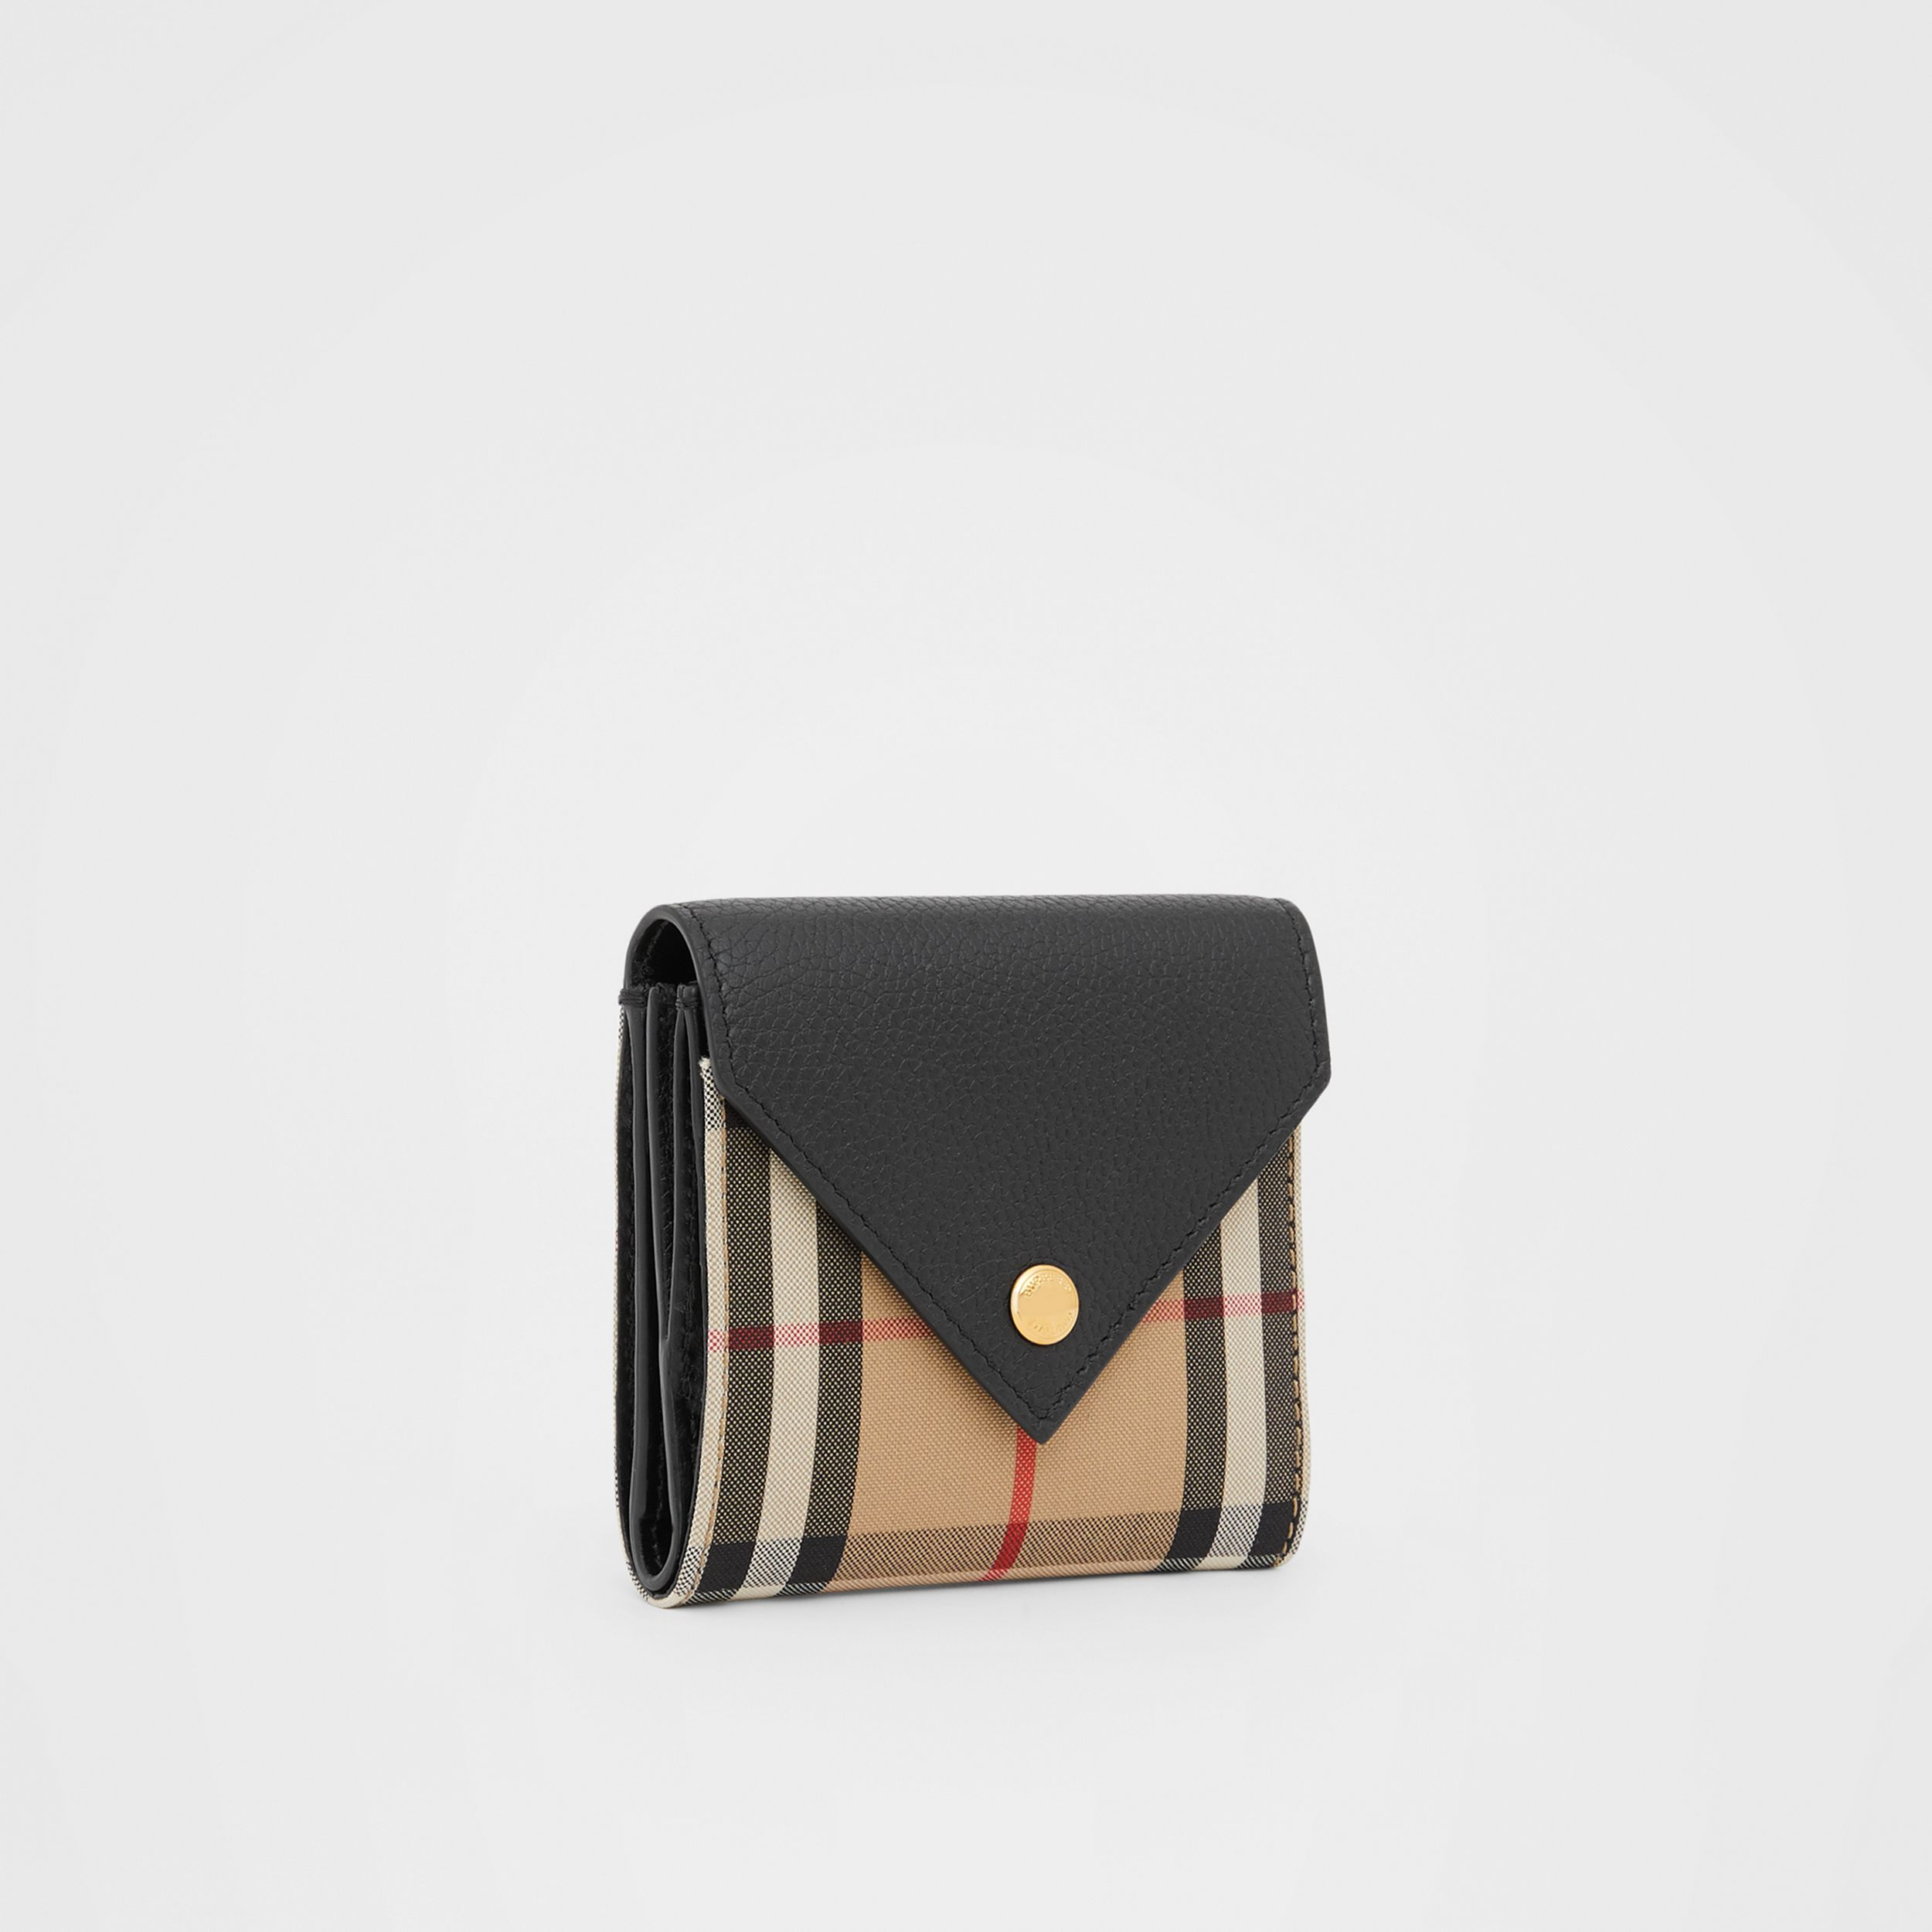 Vintage Check and Grainy Leather Folding Wallet in Black - Women | Burberry Canada - 4